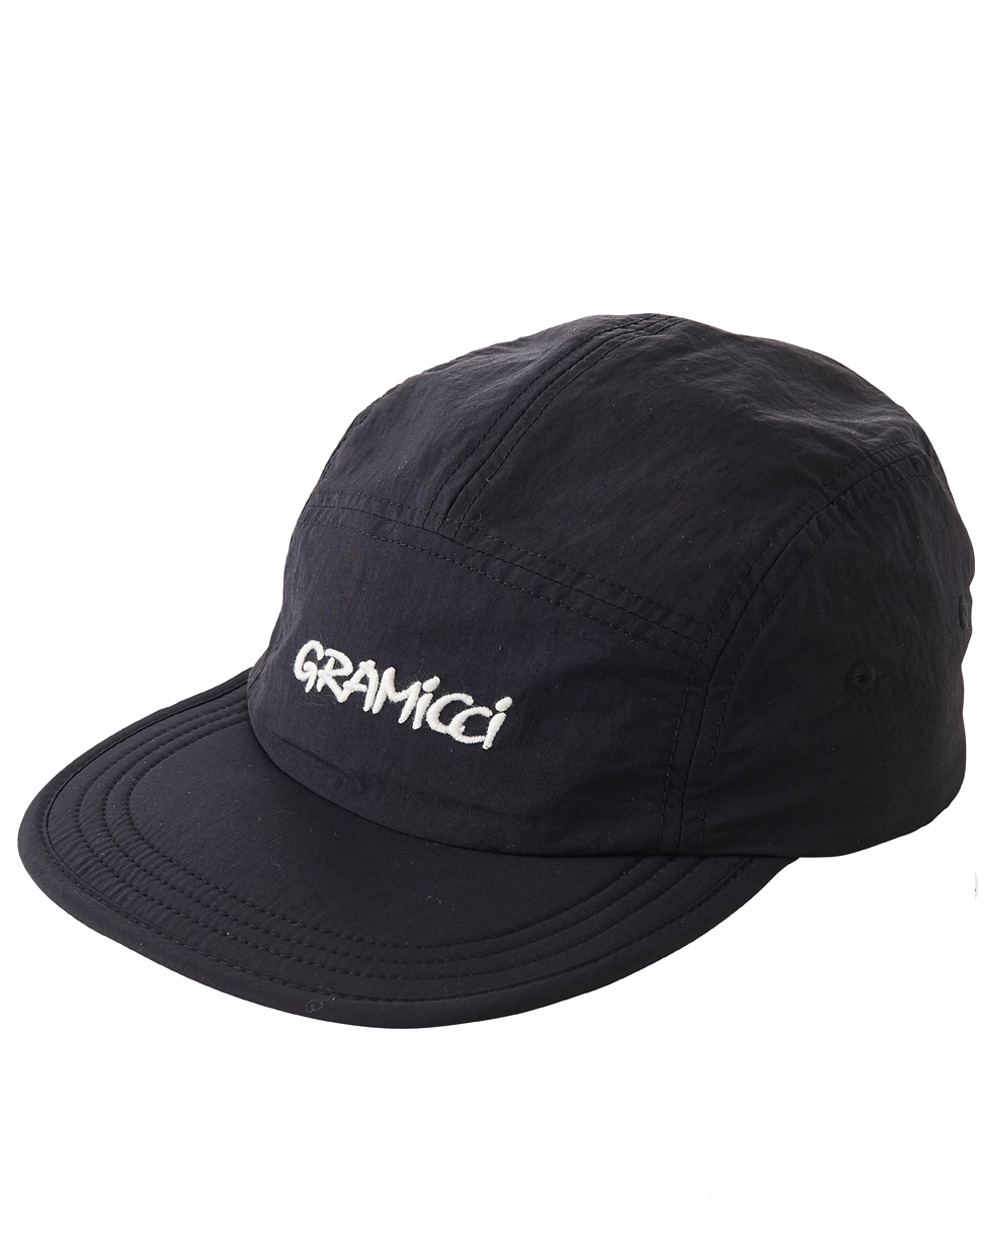 그라미치 SHELL JET CAP (Black)